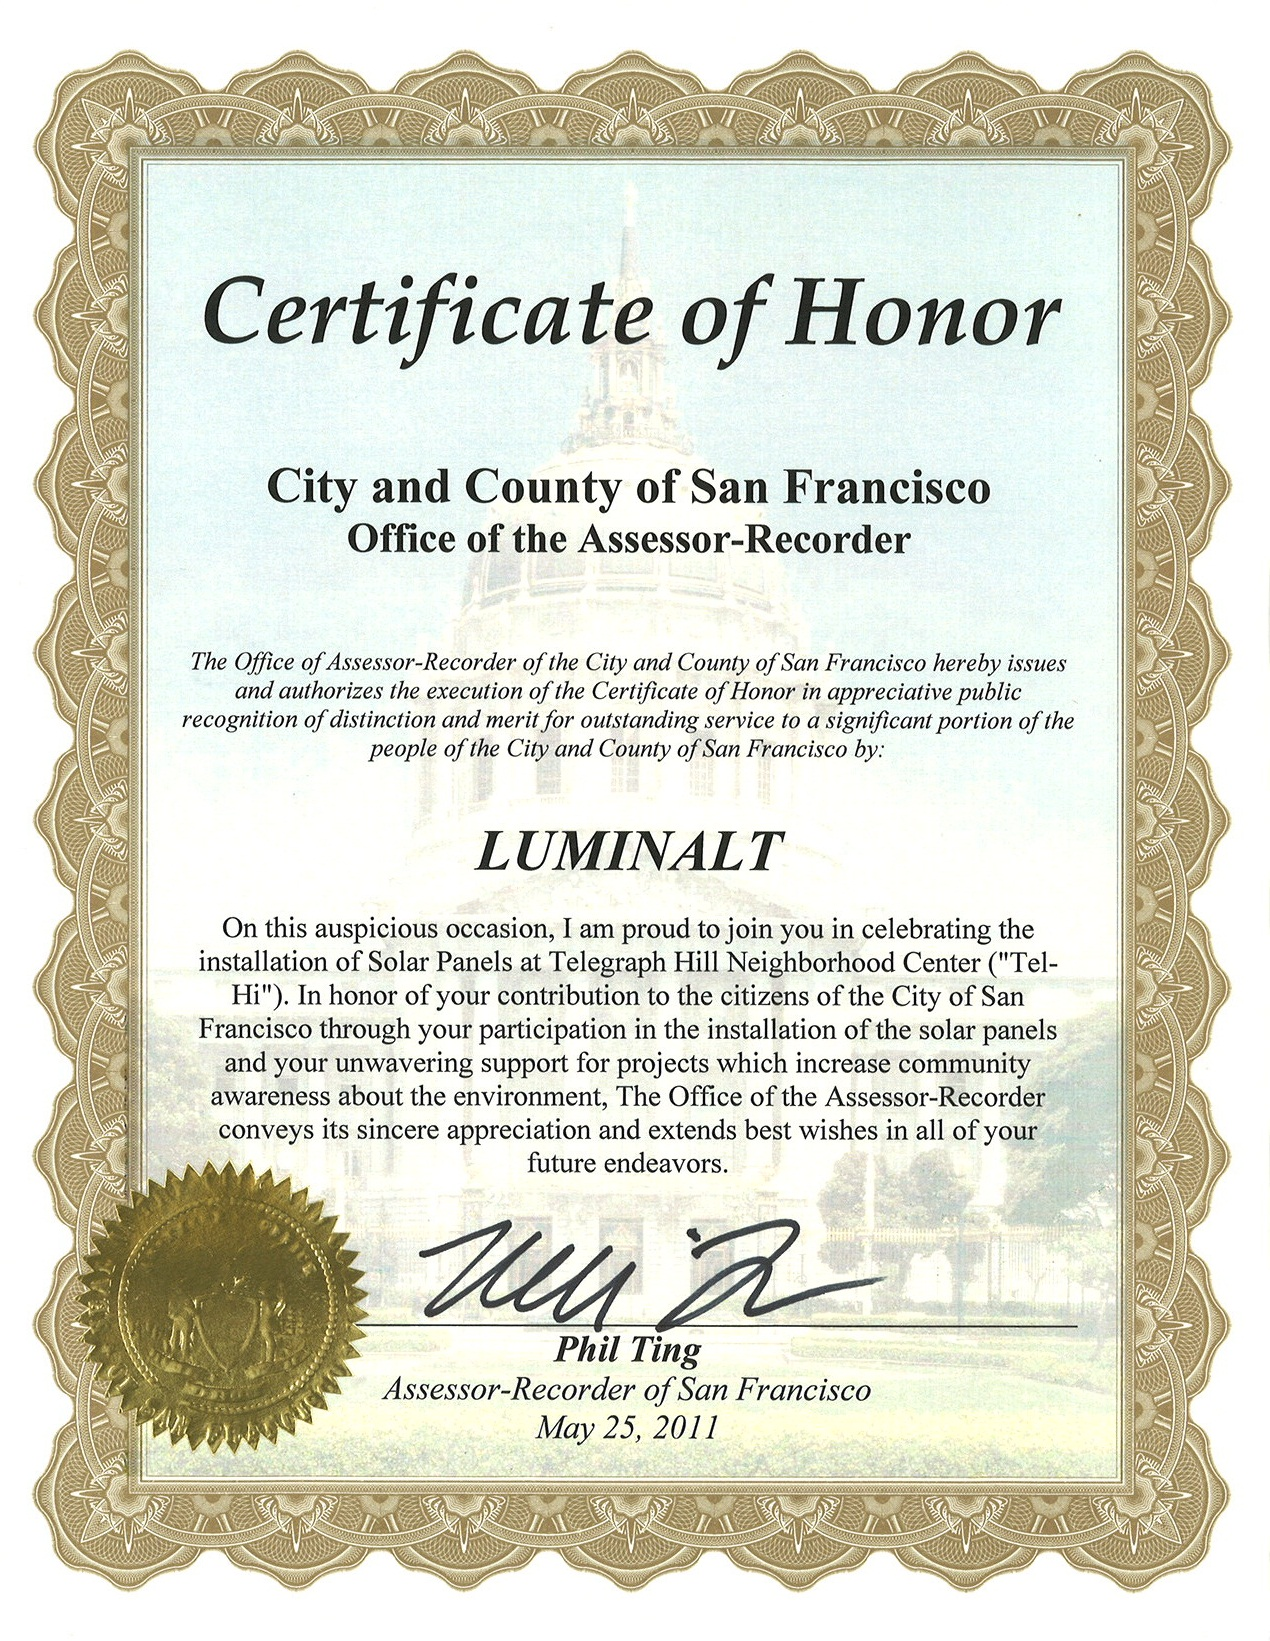 Certificate of Honor community service solar installer Phil Ting